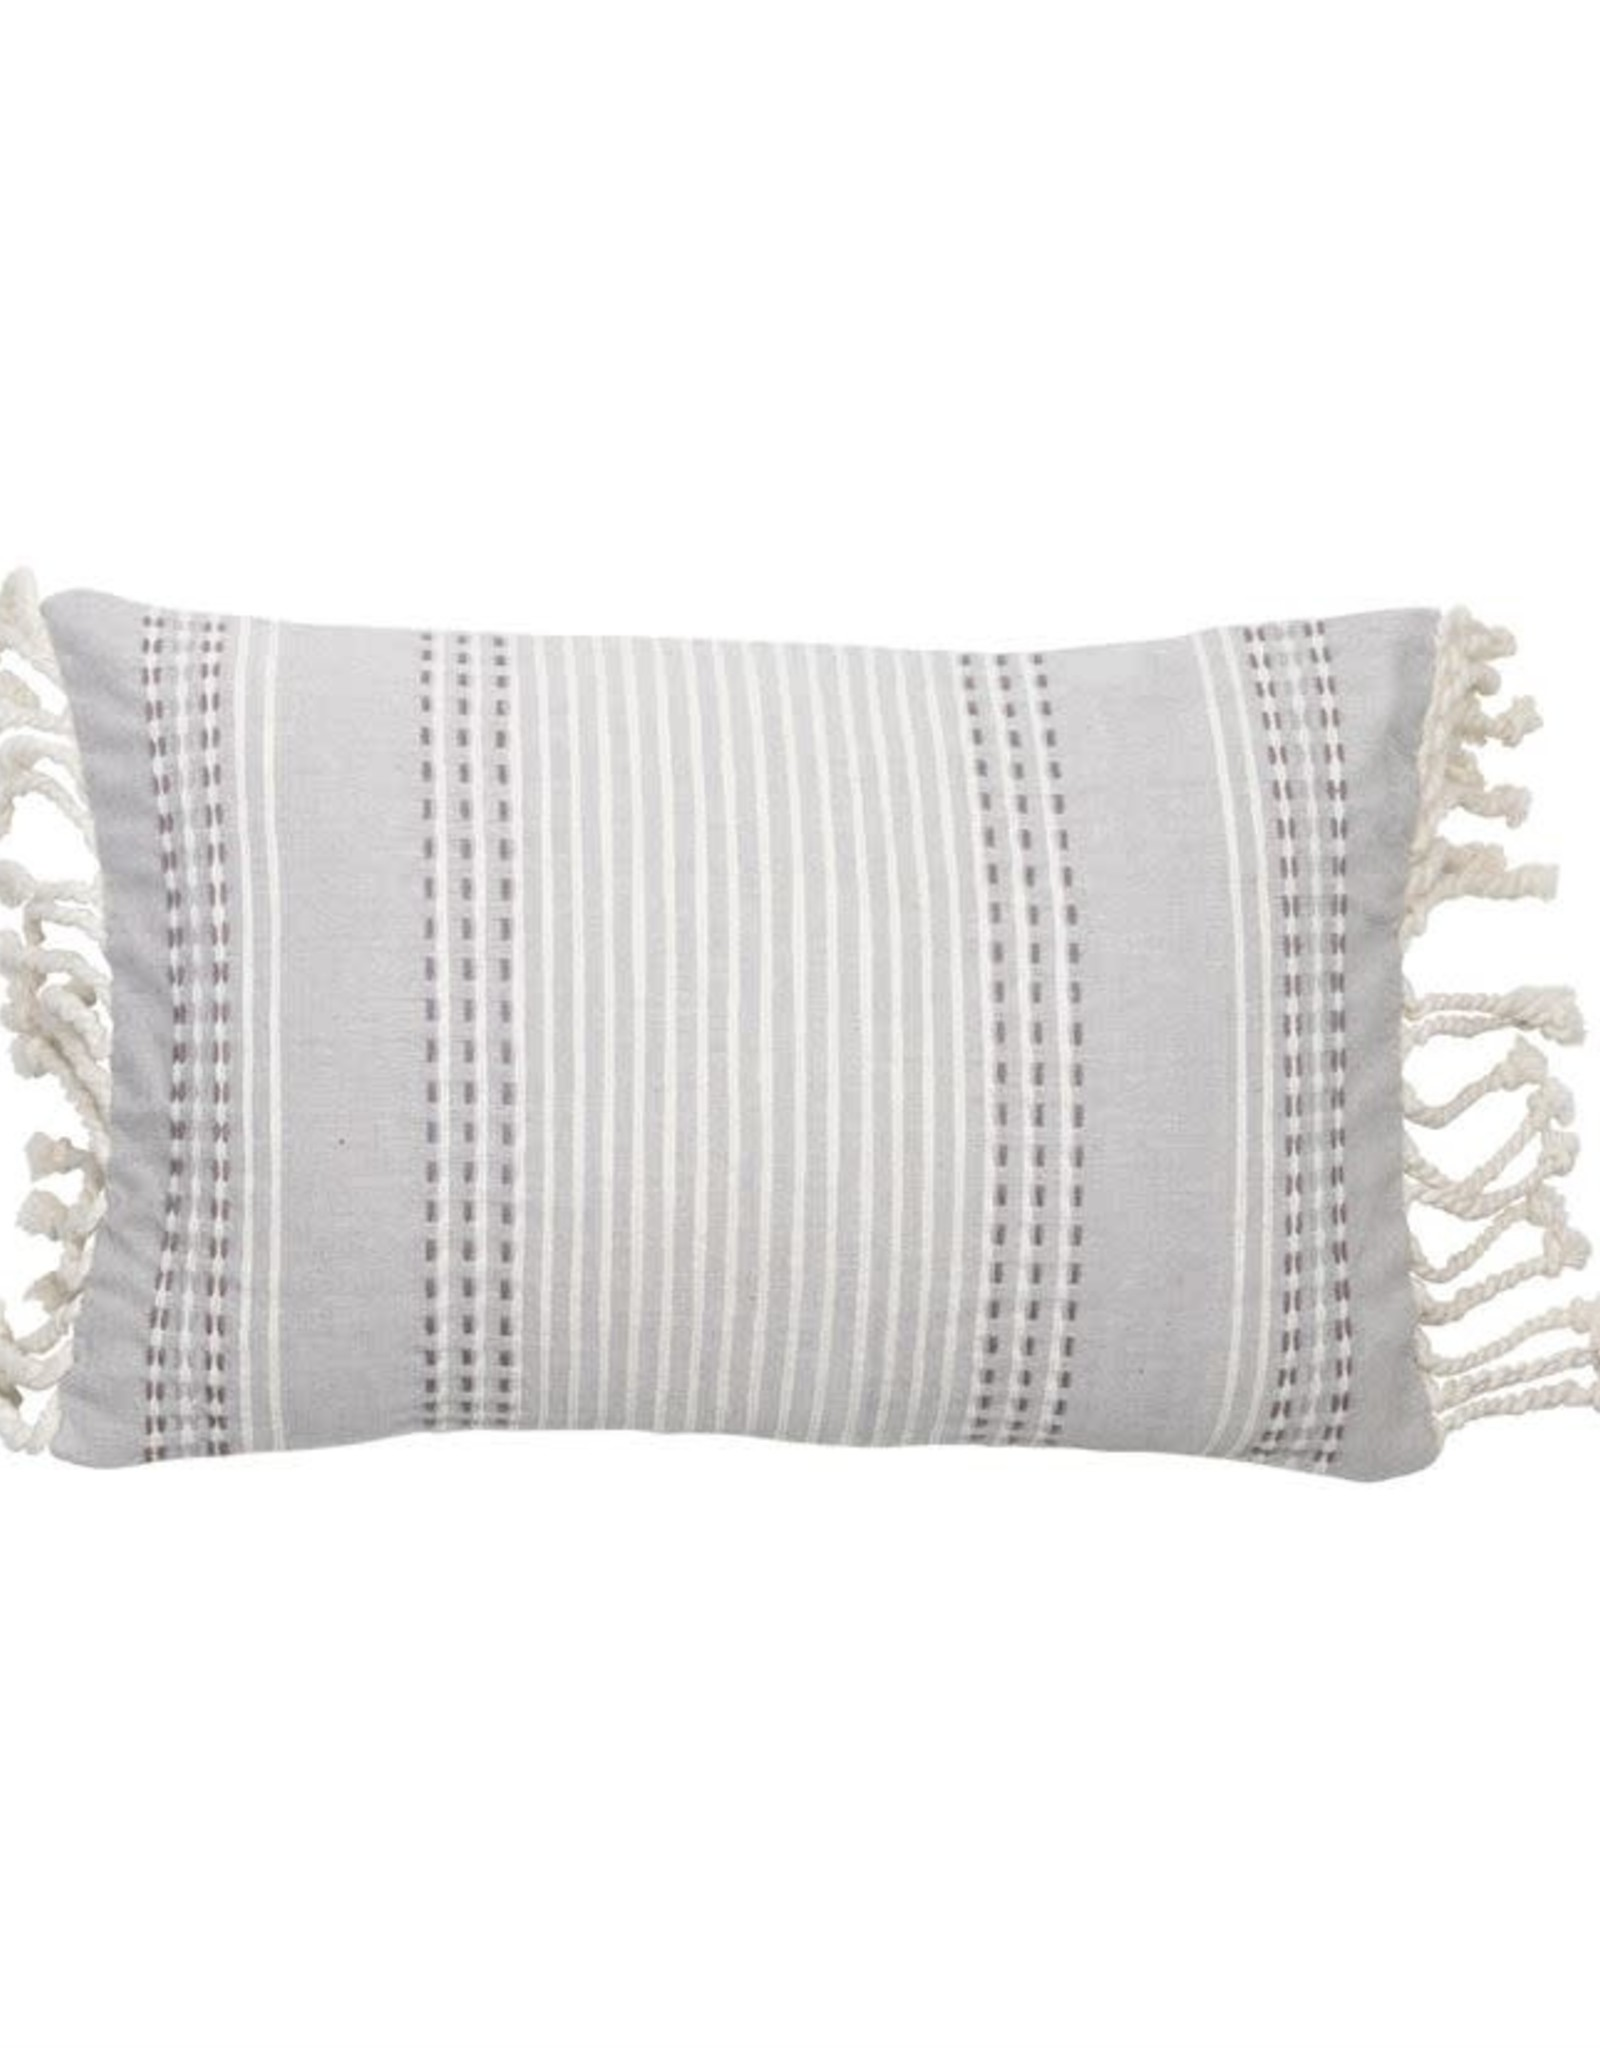 Gray Patterened Pillows with Fringe